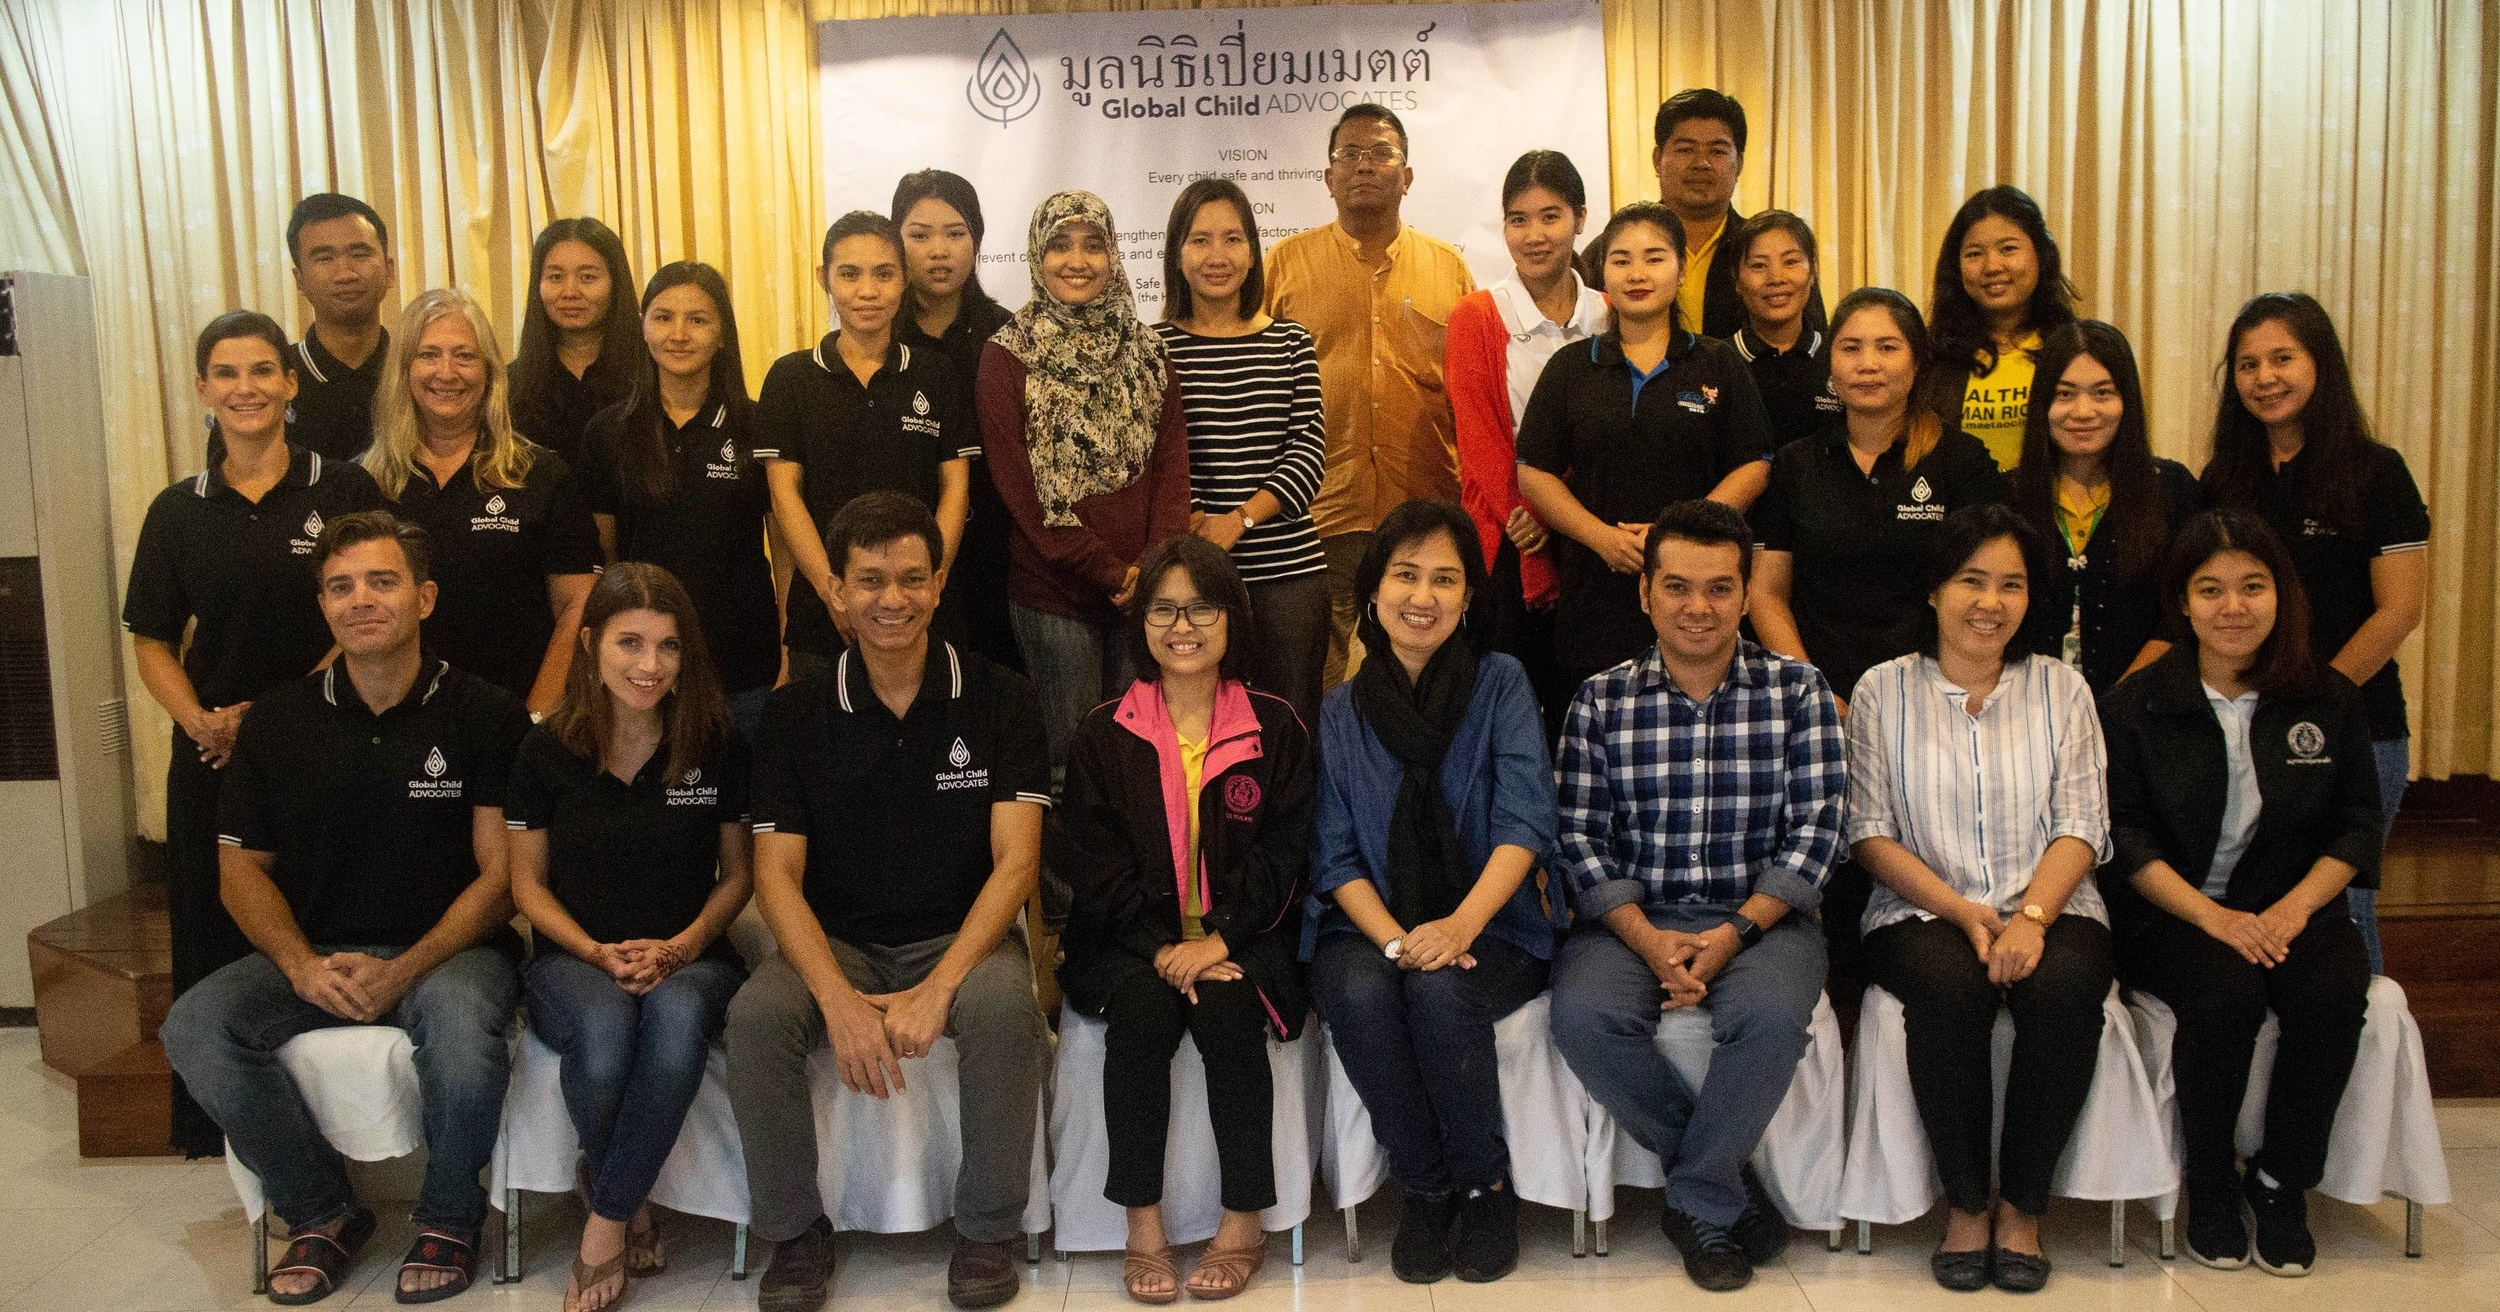 Local Organization Leaders - Save the Children, IRC Thailand, Thailand Child Welfare Department, Mae Tao Clinic, FFW, CPPCR, Social Action for Women,Tak Government Children's Home, Suwannimit Foundation, One Stop Crisis Center (OSCC),Life Impact